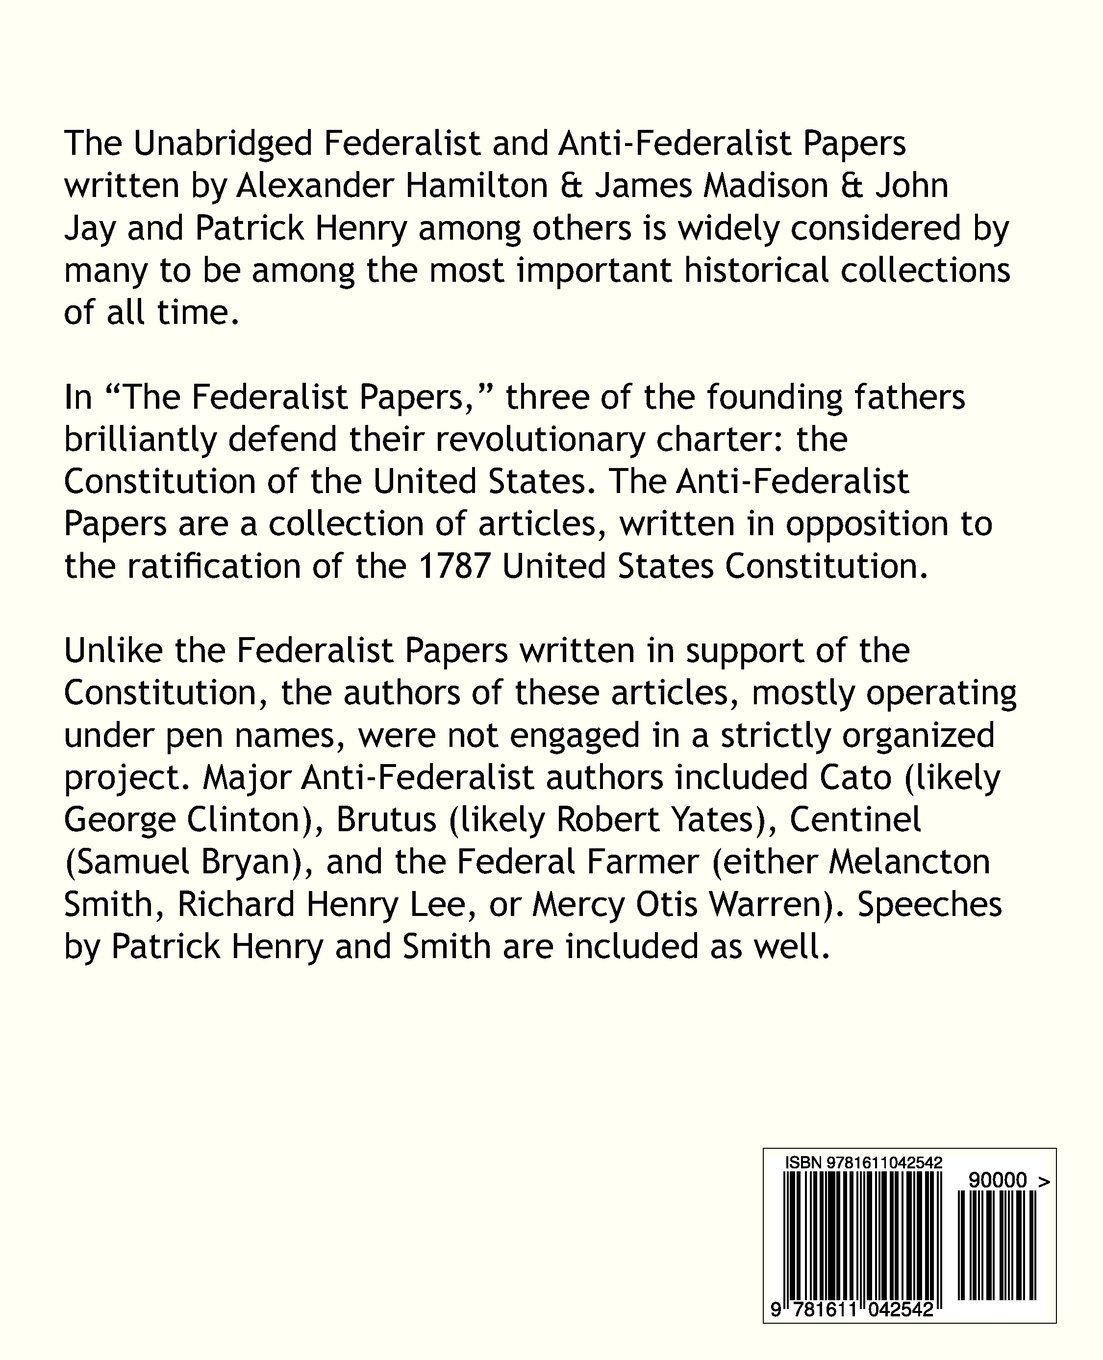 the unabridged federalist papers and anti federalist papers john the unabridged federalist papers and anti federalist papers john jay james madison patrick henry alexander hamilton 9781611042542 com books